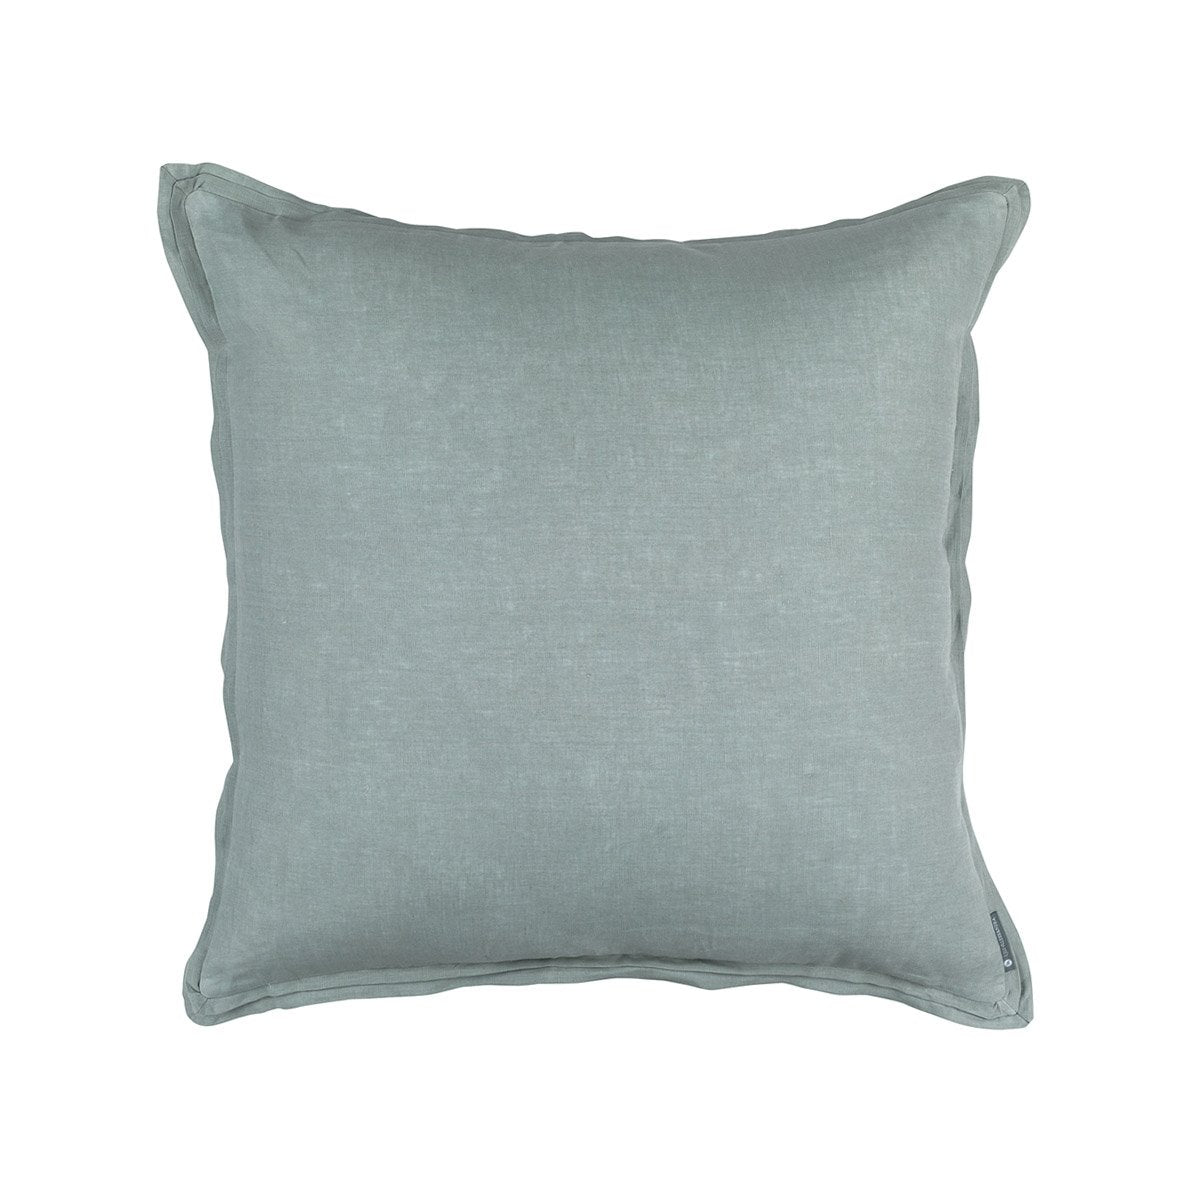 Fig Linens - Lili Alessandra Bedding - Bloom Sky Euro Pillow